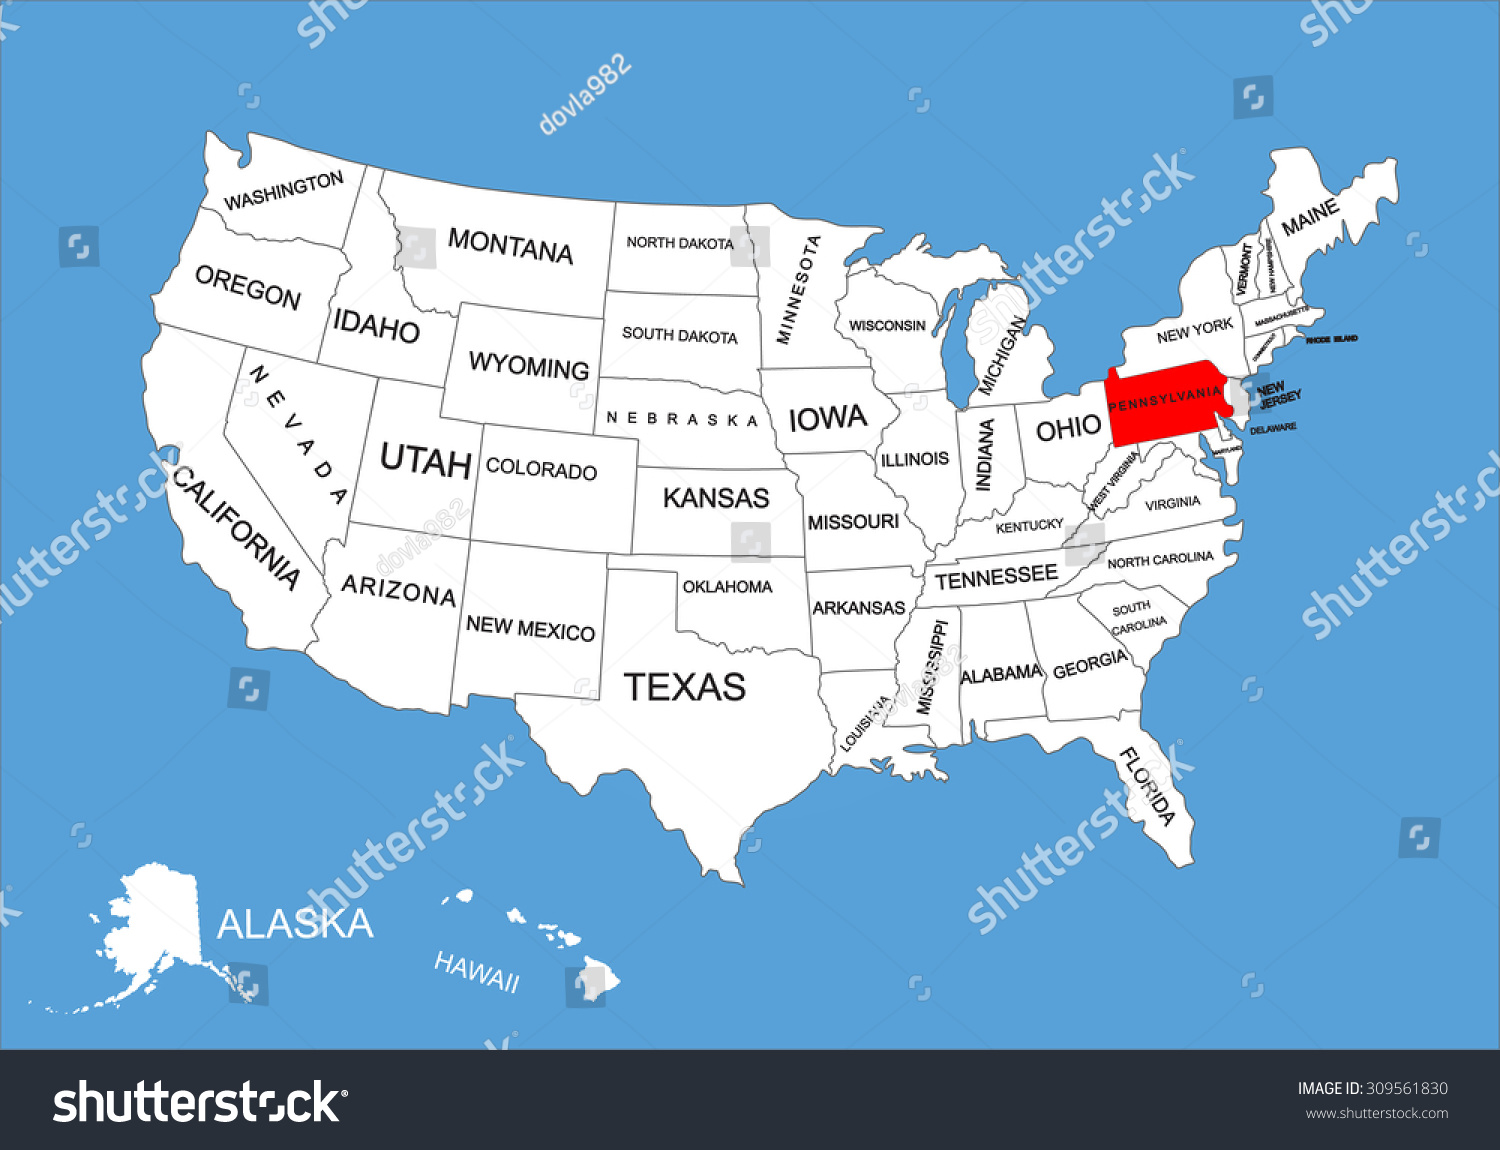 Pennsylvania State Usa Vector Map Isolated Stock Vector - Us map pennsylvania state